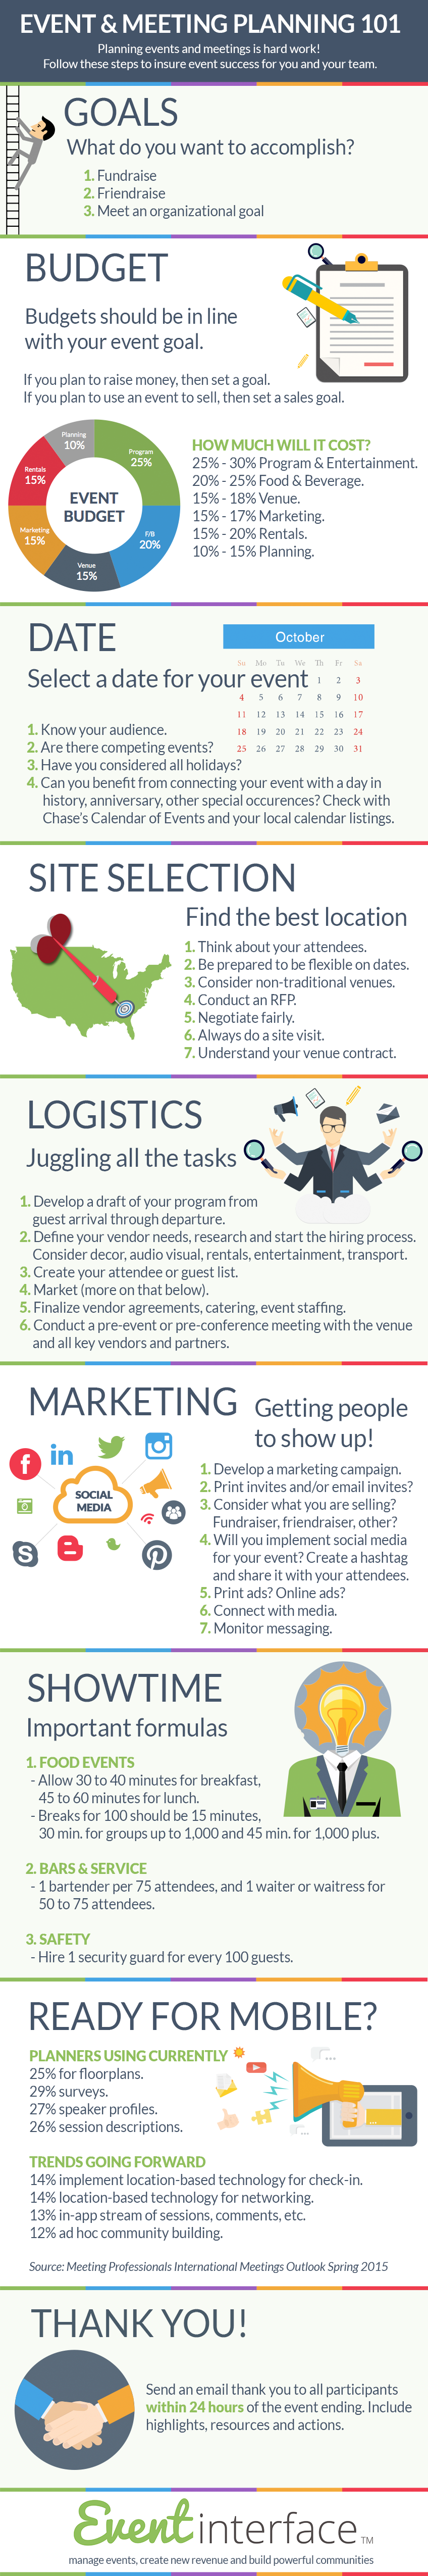 Event Planning infographic by Eventinterface. Planning events and meetings